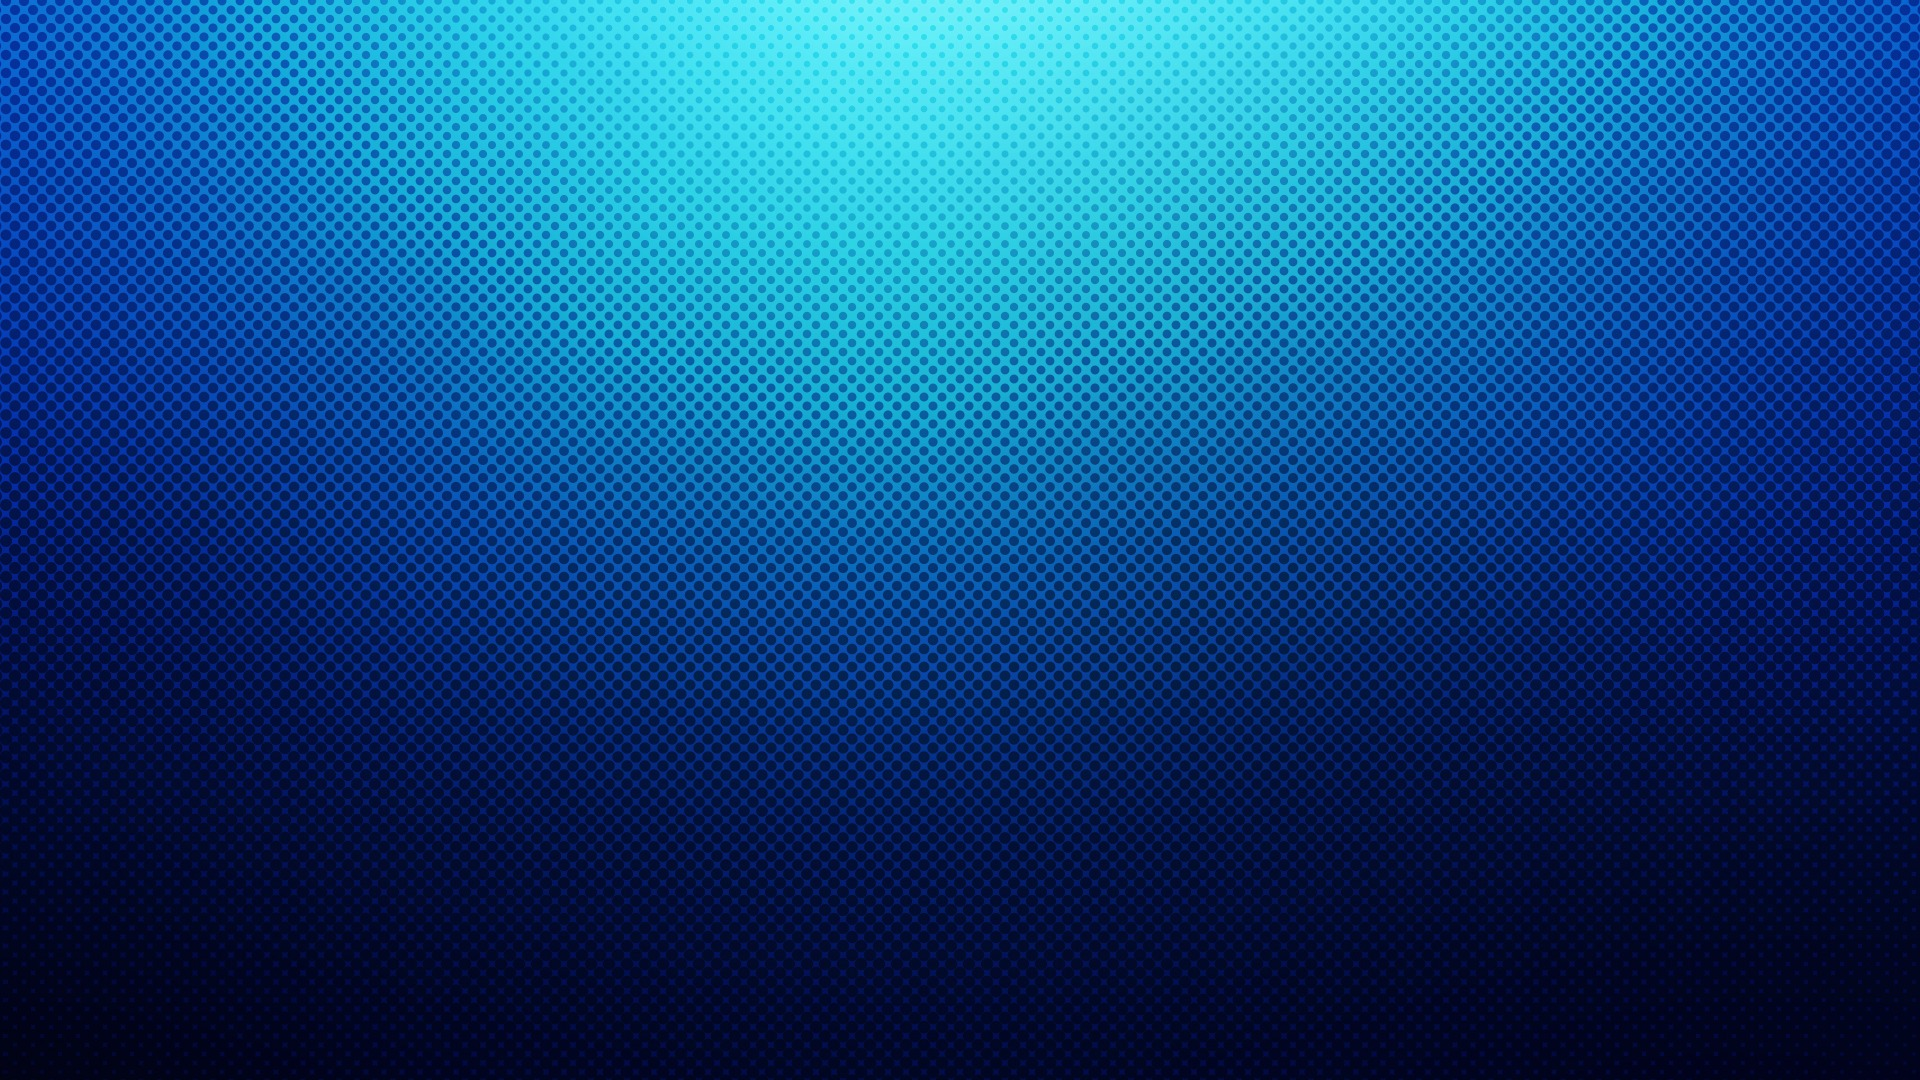 Blue Gradient Background HD Wallpaper Global Sustainable 1920x1080